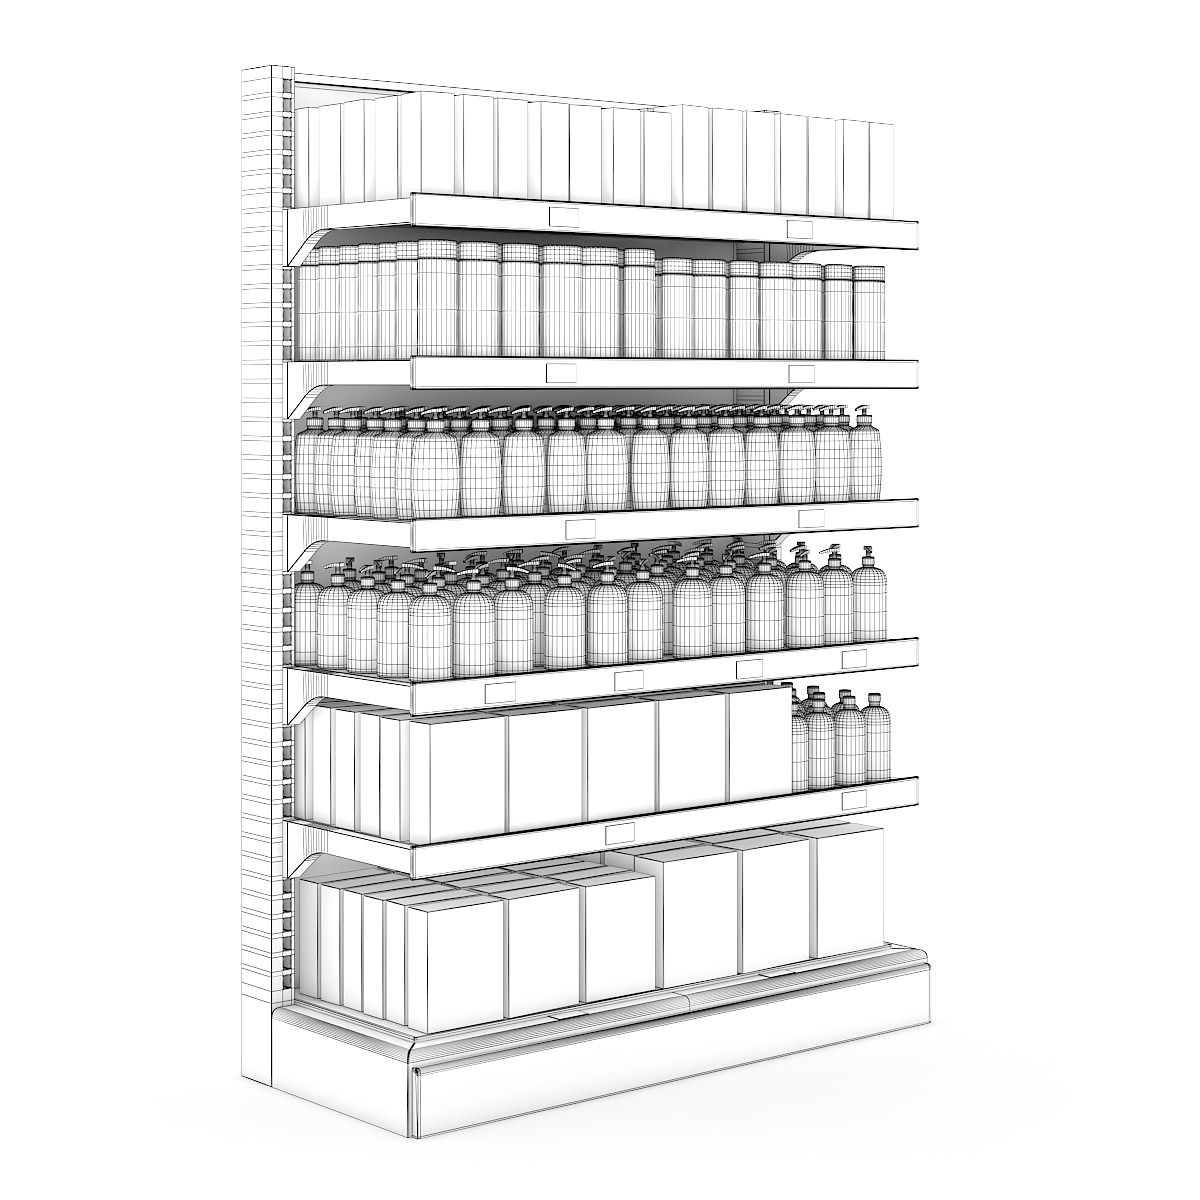 Supermarket Shelf 10 3d Model C4d